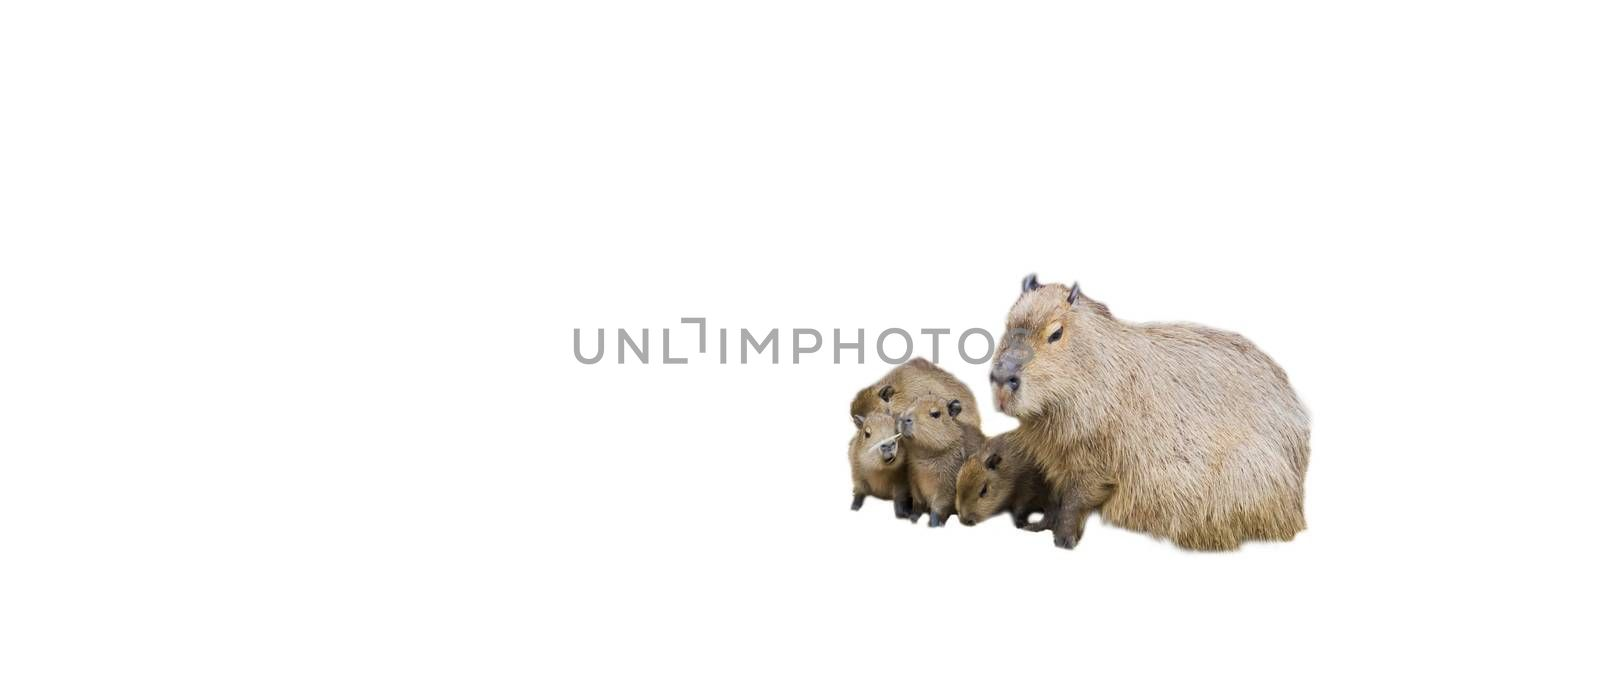 Animal family of capybaras, capybara mother with her baby puppies, Isolated on a white background